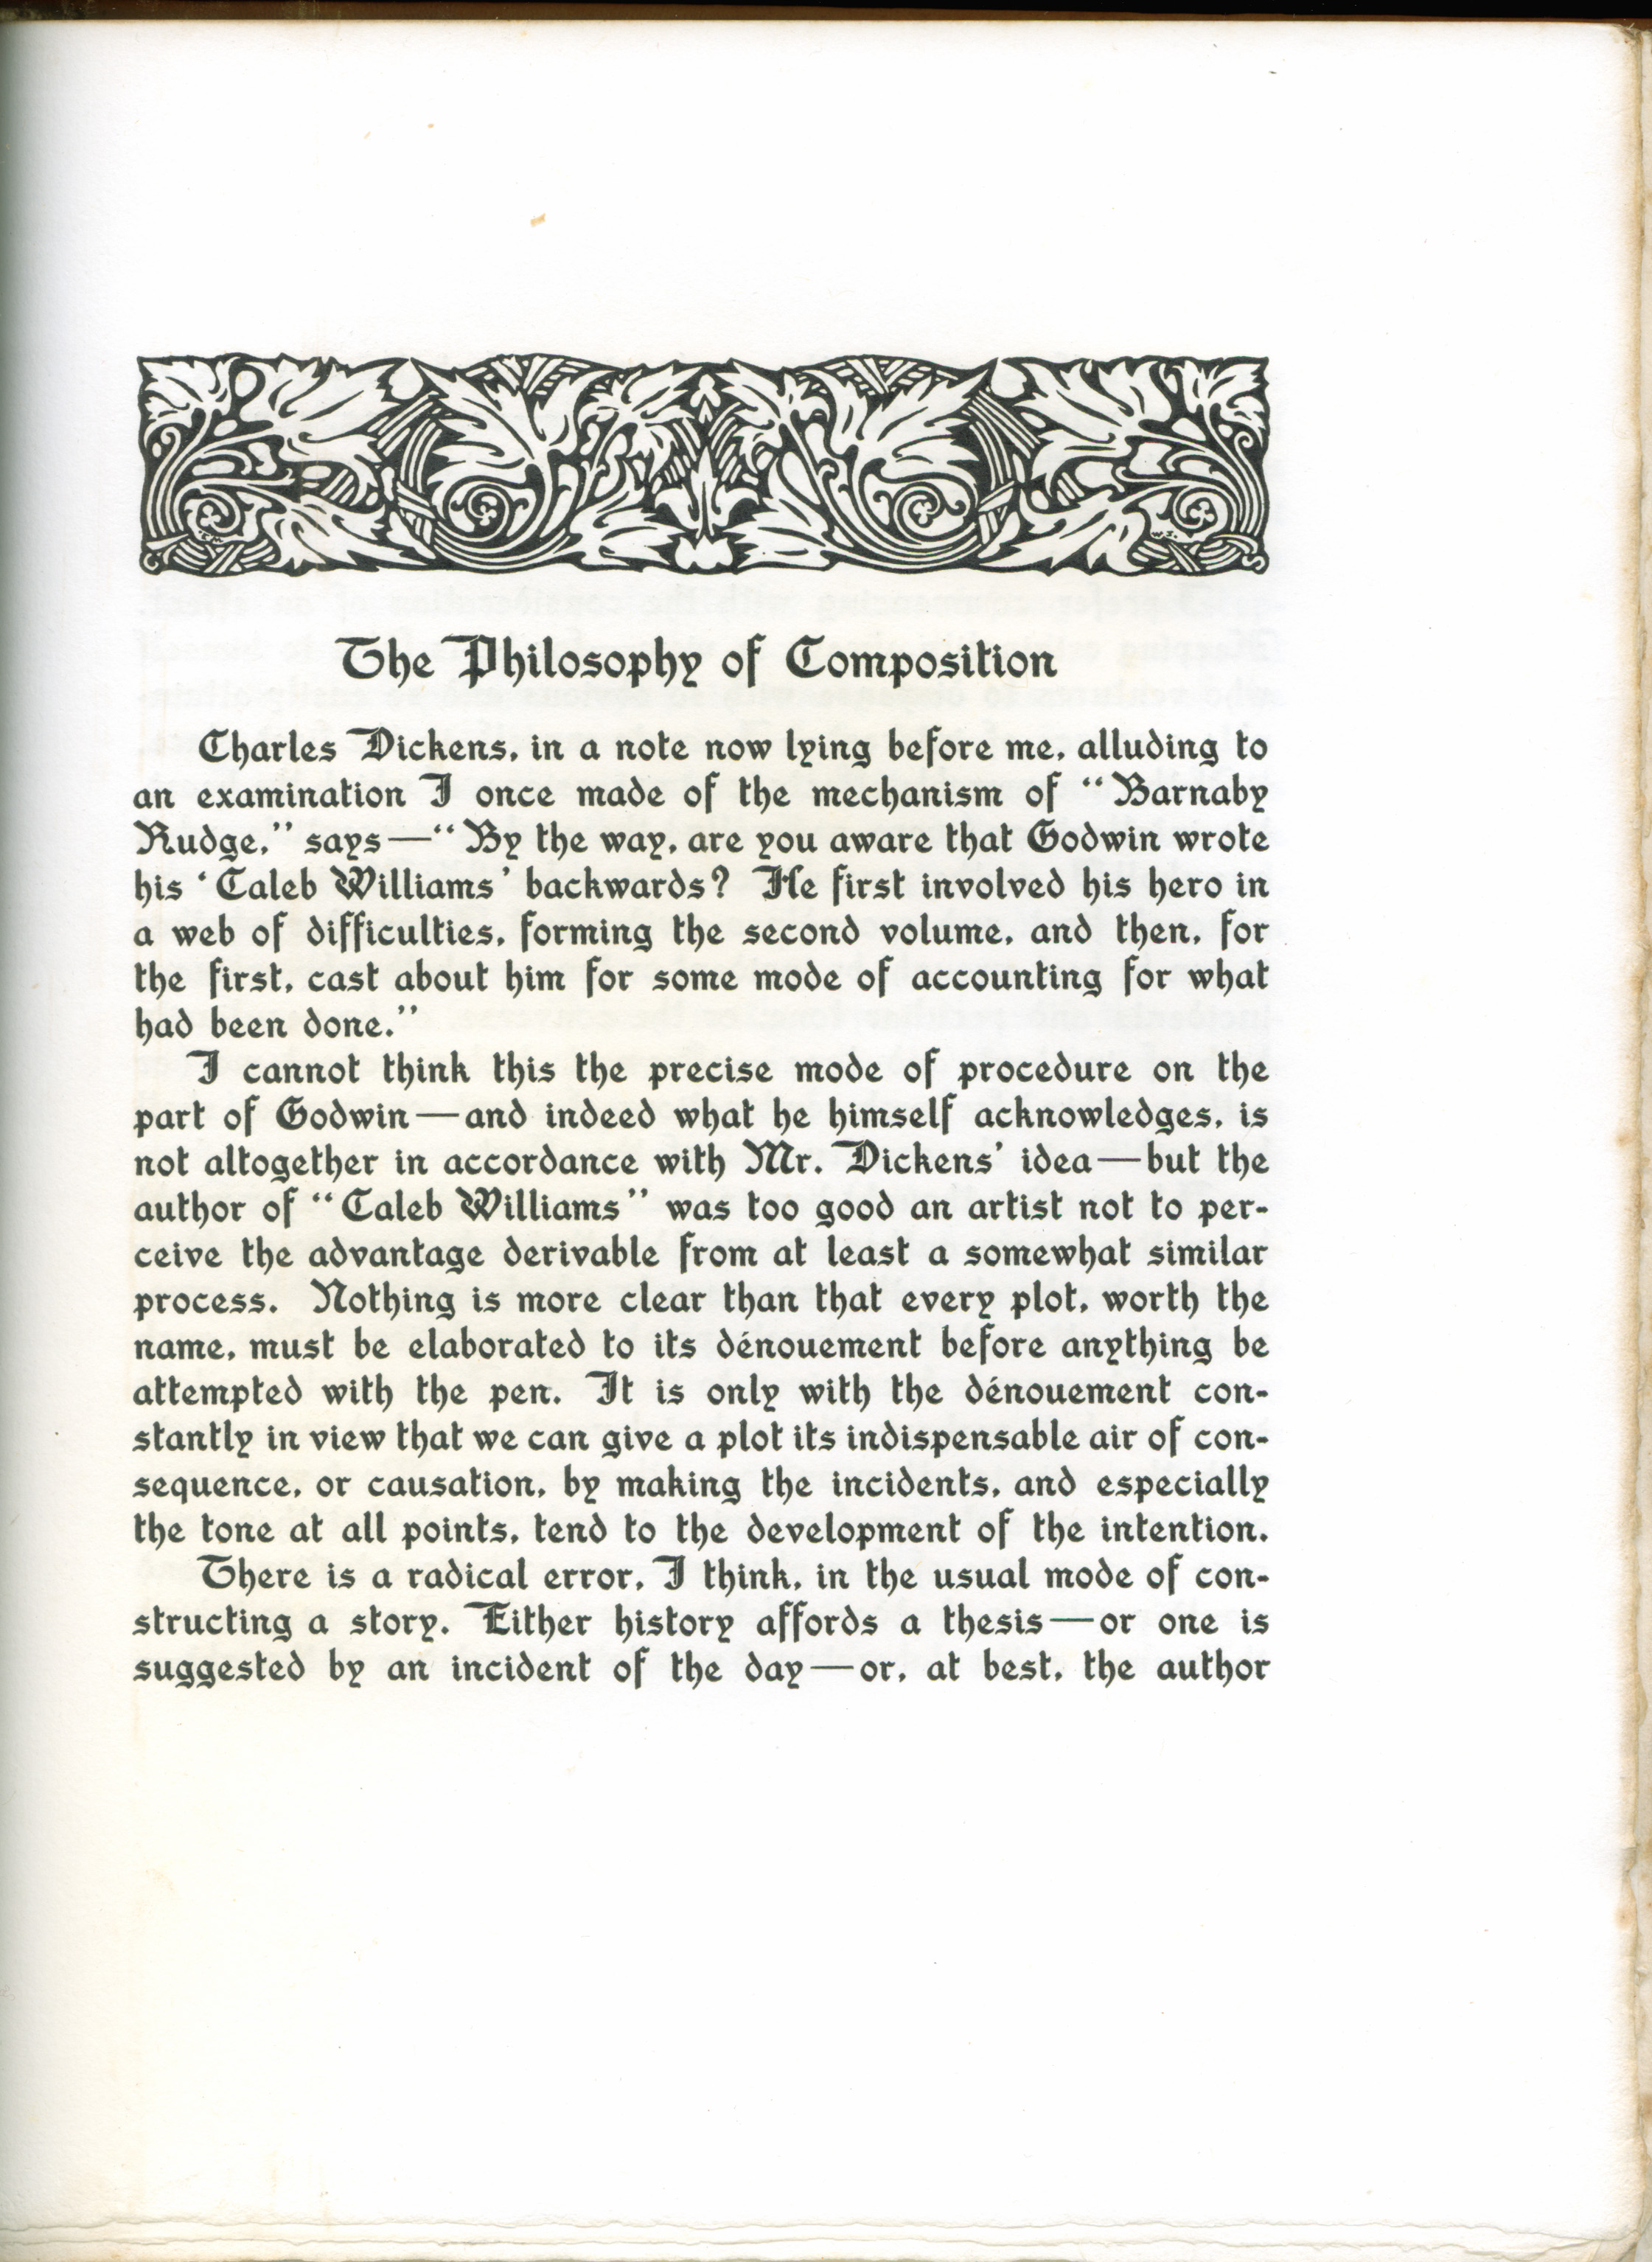 paul elder co the raven 1907 first page of the philosophy of composition